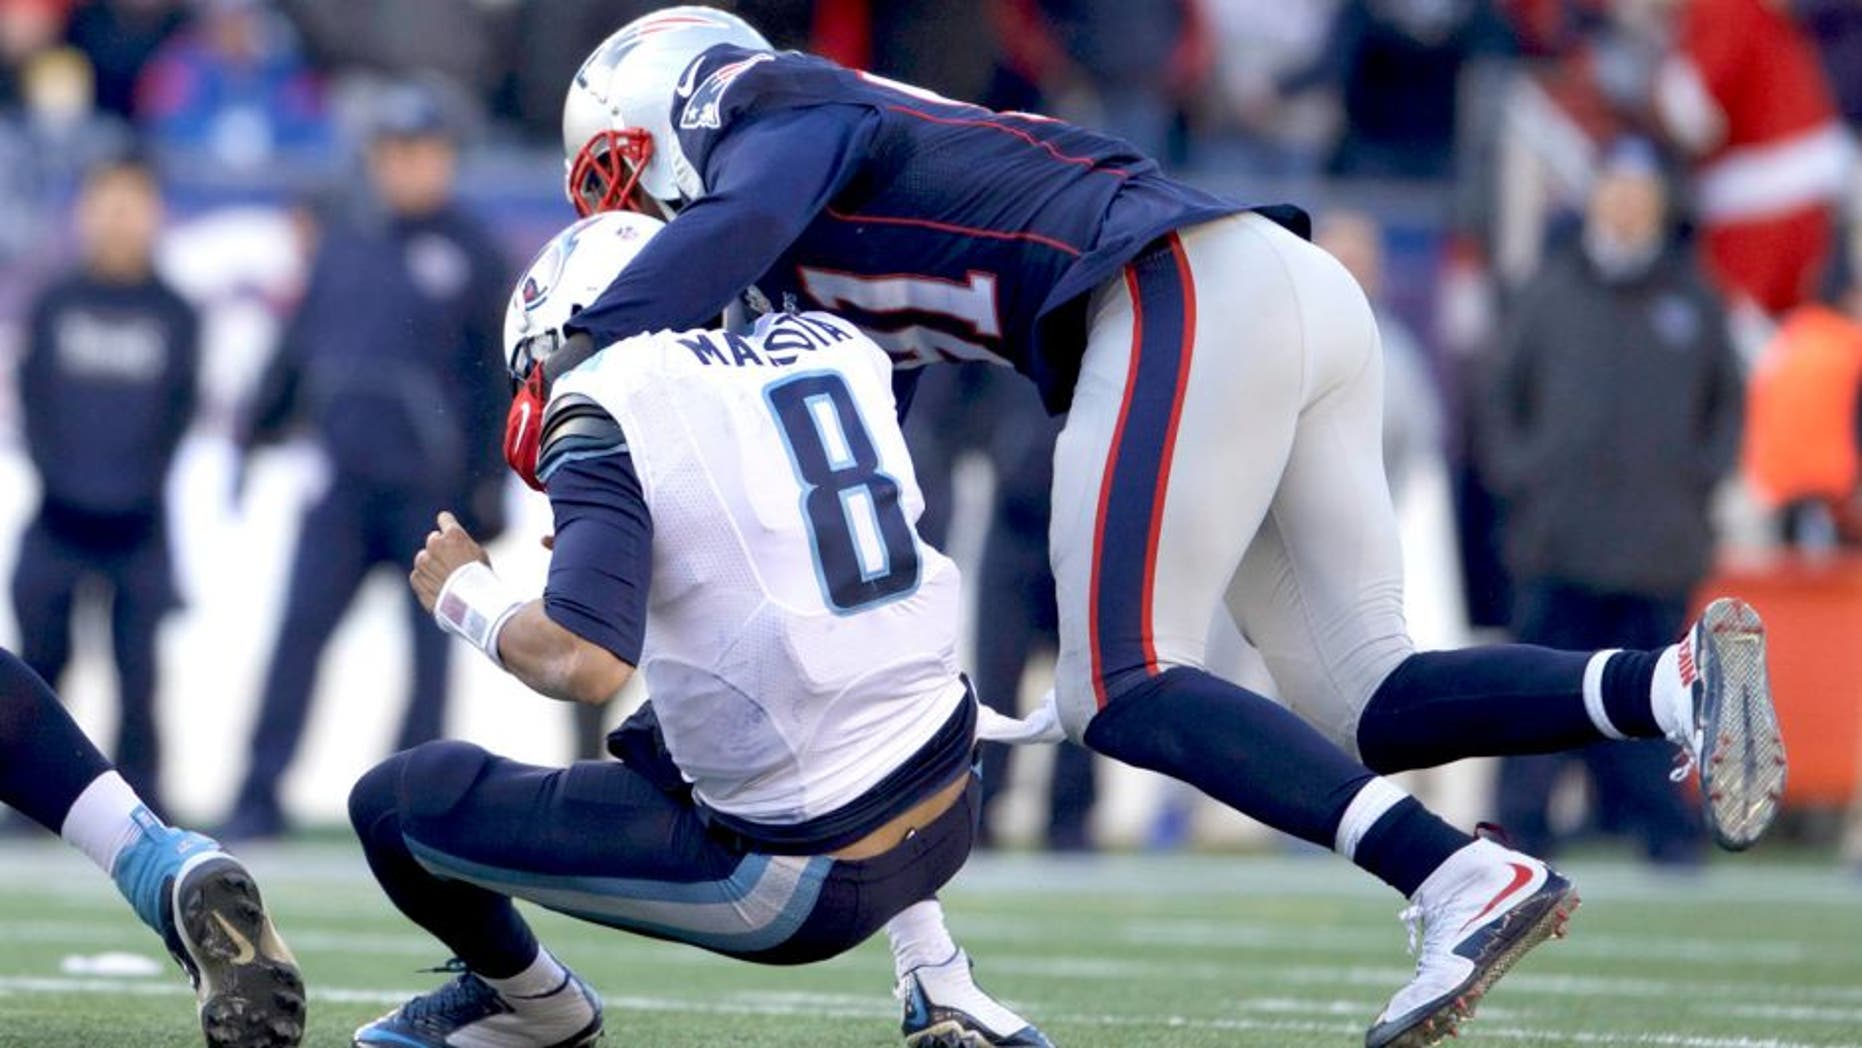 Dec 20, 2015; Foxborough, MA, USA; New England Patriots outside linebacker Jamie Collins (91) sacks Tennessee Titans quarterback Marcus Mariota (8) in the first half at Gillette Stadium. The Patriots defeated the Titans 33-16. Mandatory Credit: David Butler II-USA TODAY Sports